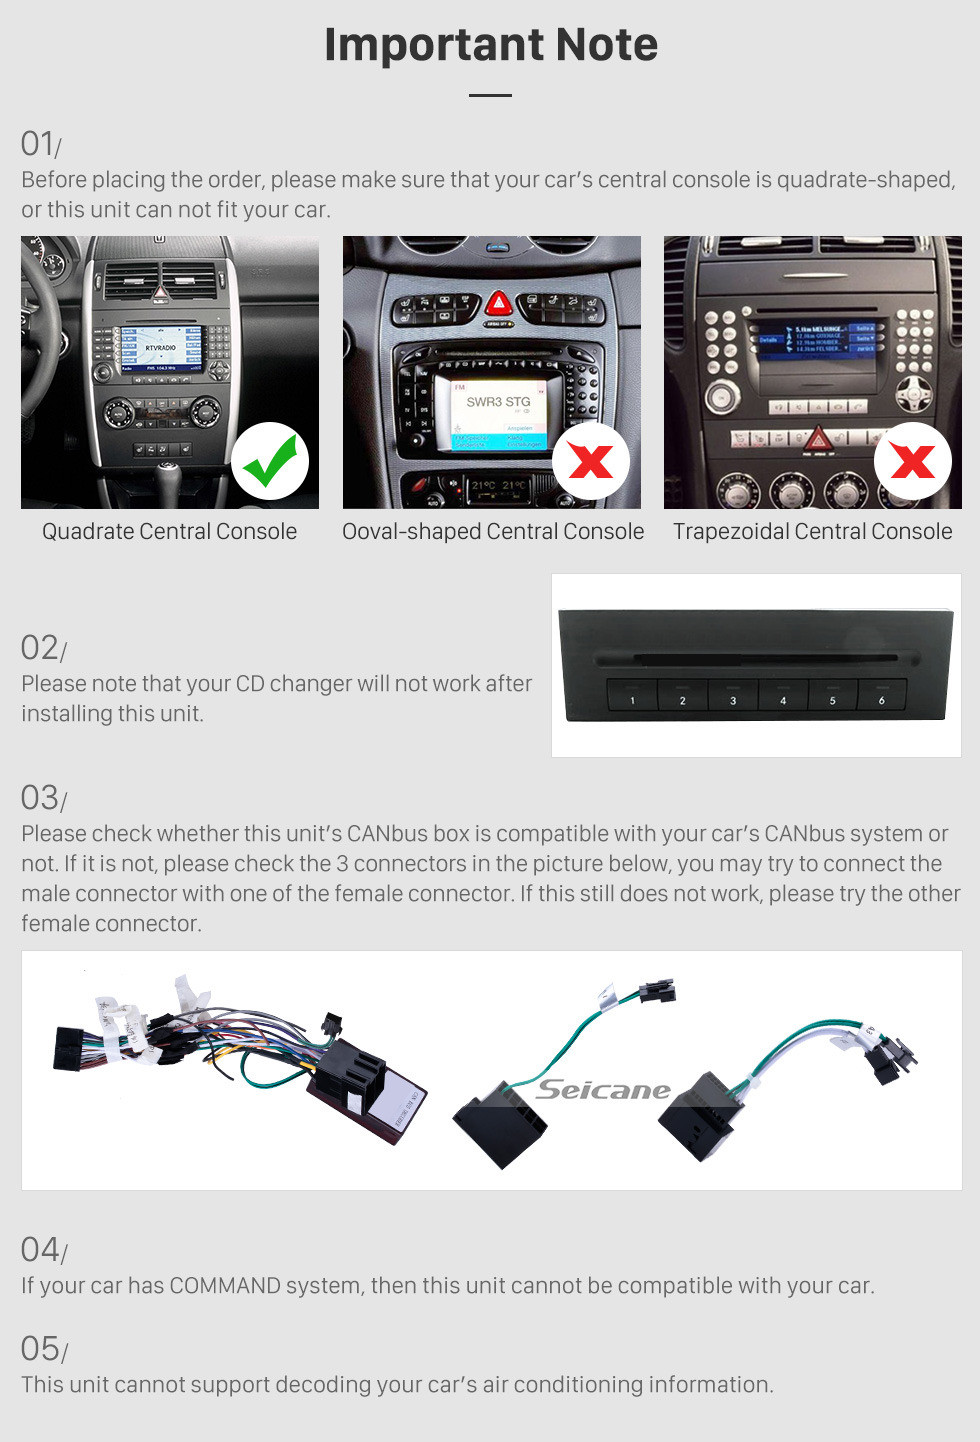 Seicane 9 inch Android 9.0 HD 1024*600 Touch Screen 2004-2012 Mercedes Benz A W169 A150 A160 A170 A180 A200 Radio GPS Head Unit with 3G WiFi DVD Player Bluetooth Music AUX Rearview Camera OBD2 Mirror Link